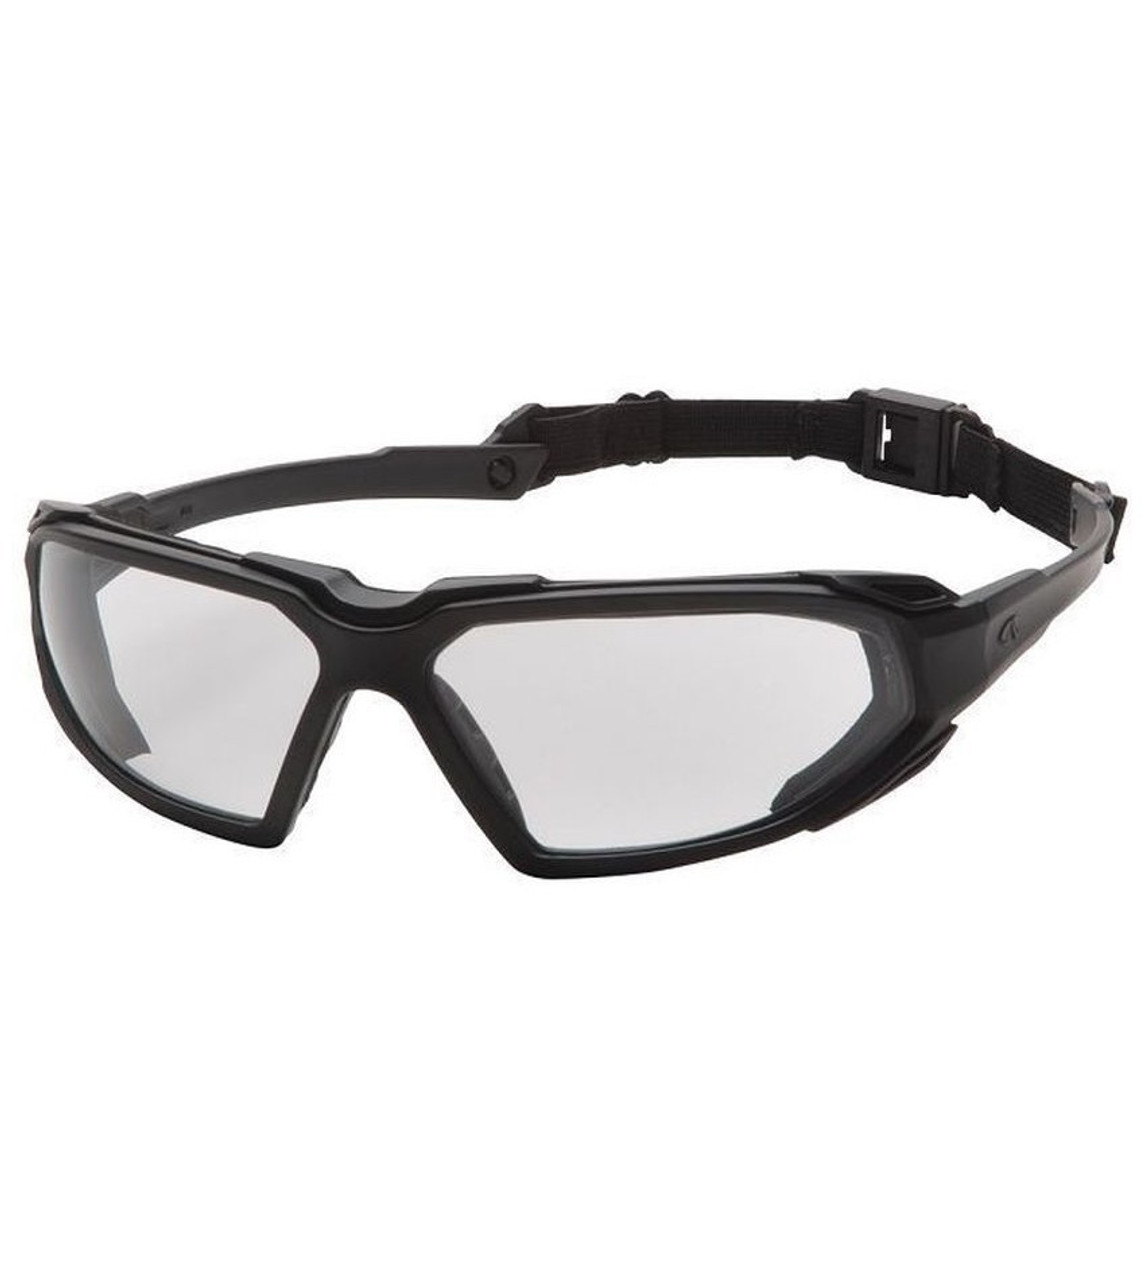 Airsoft Goggles & Face Masks